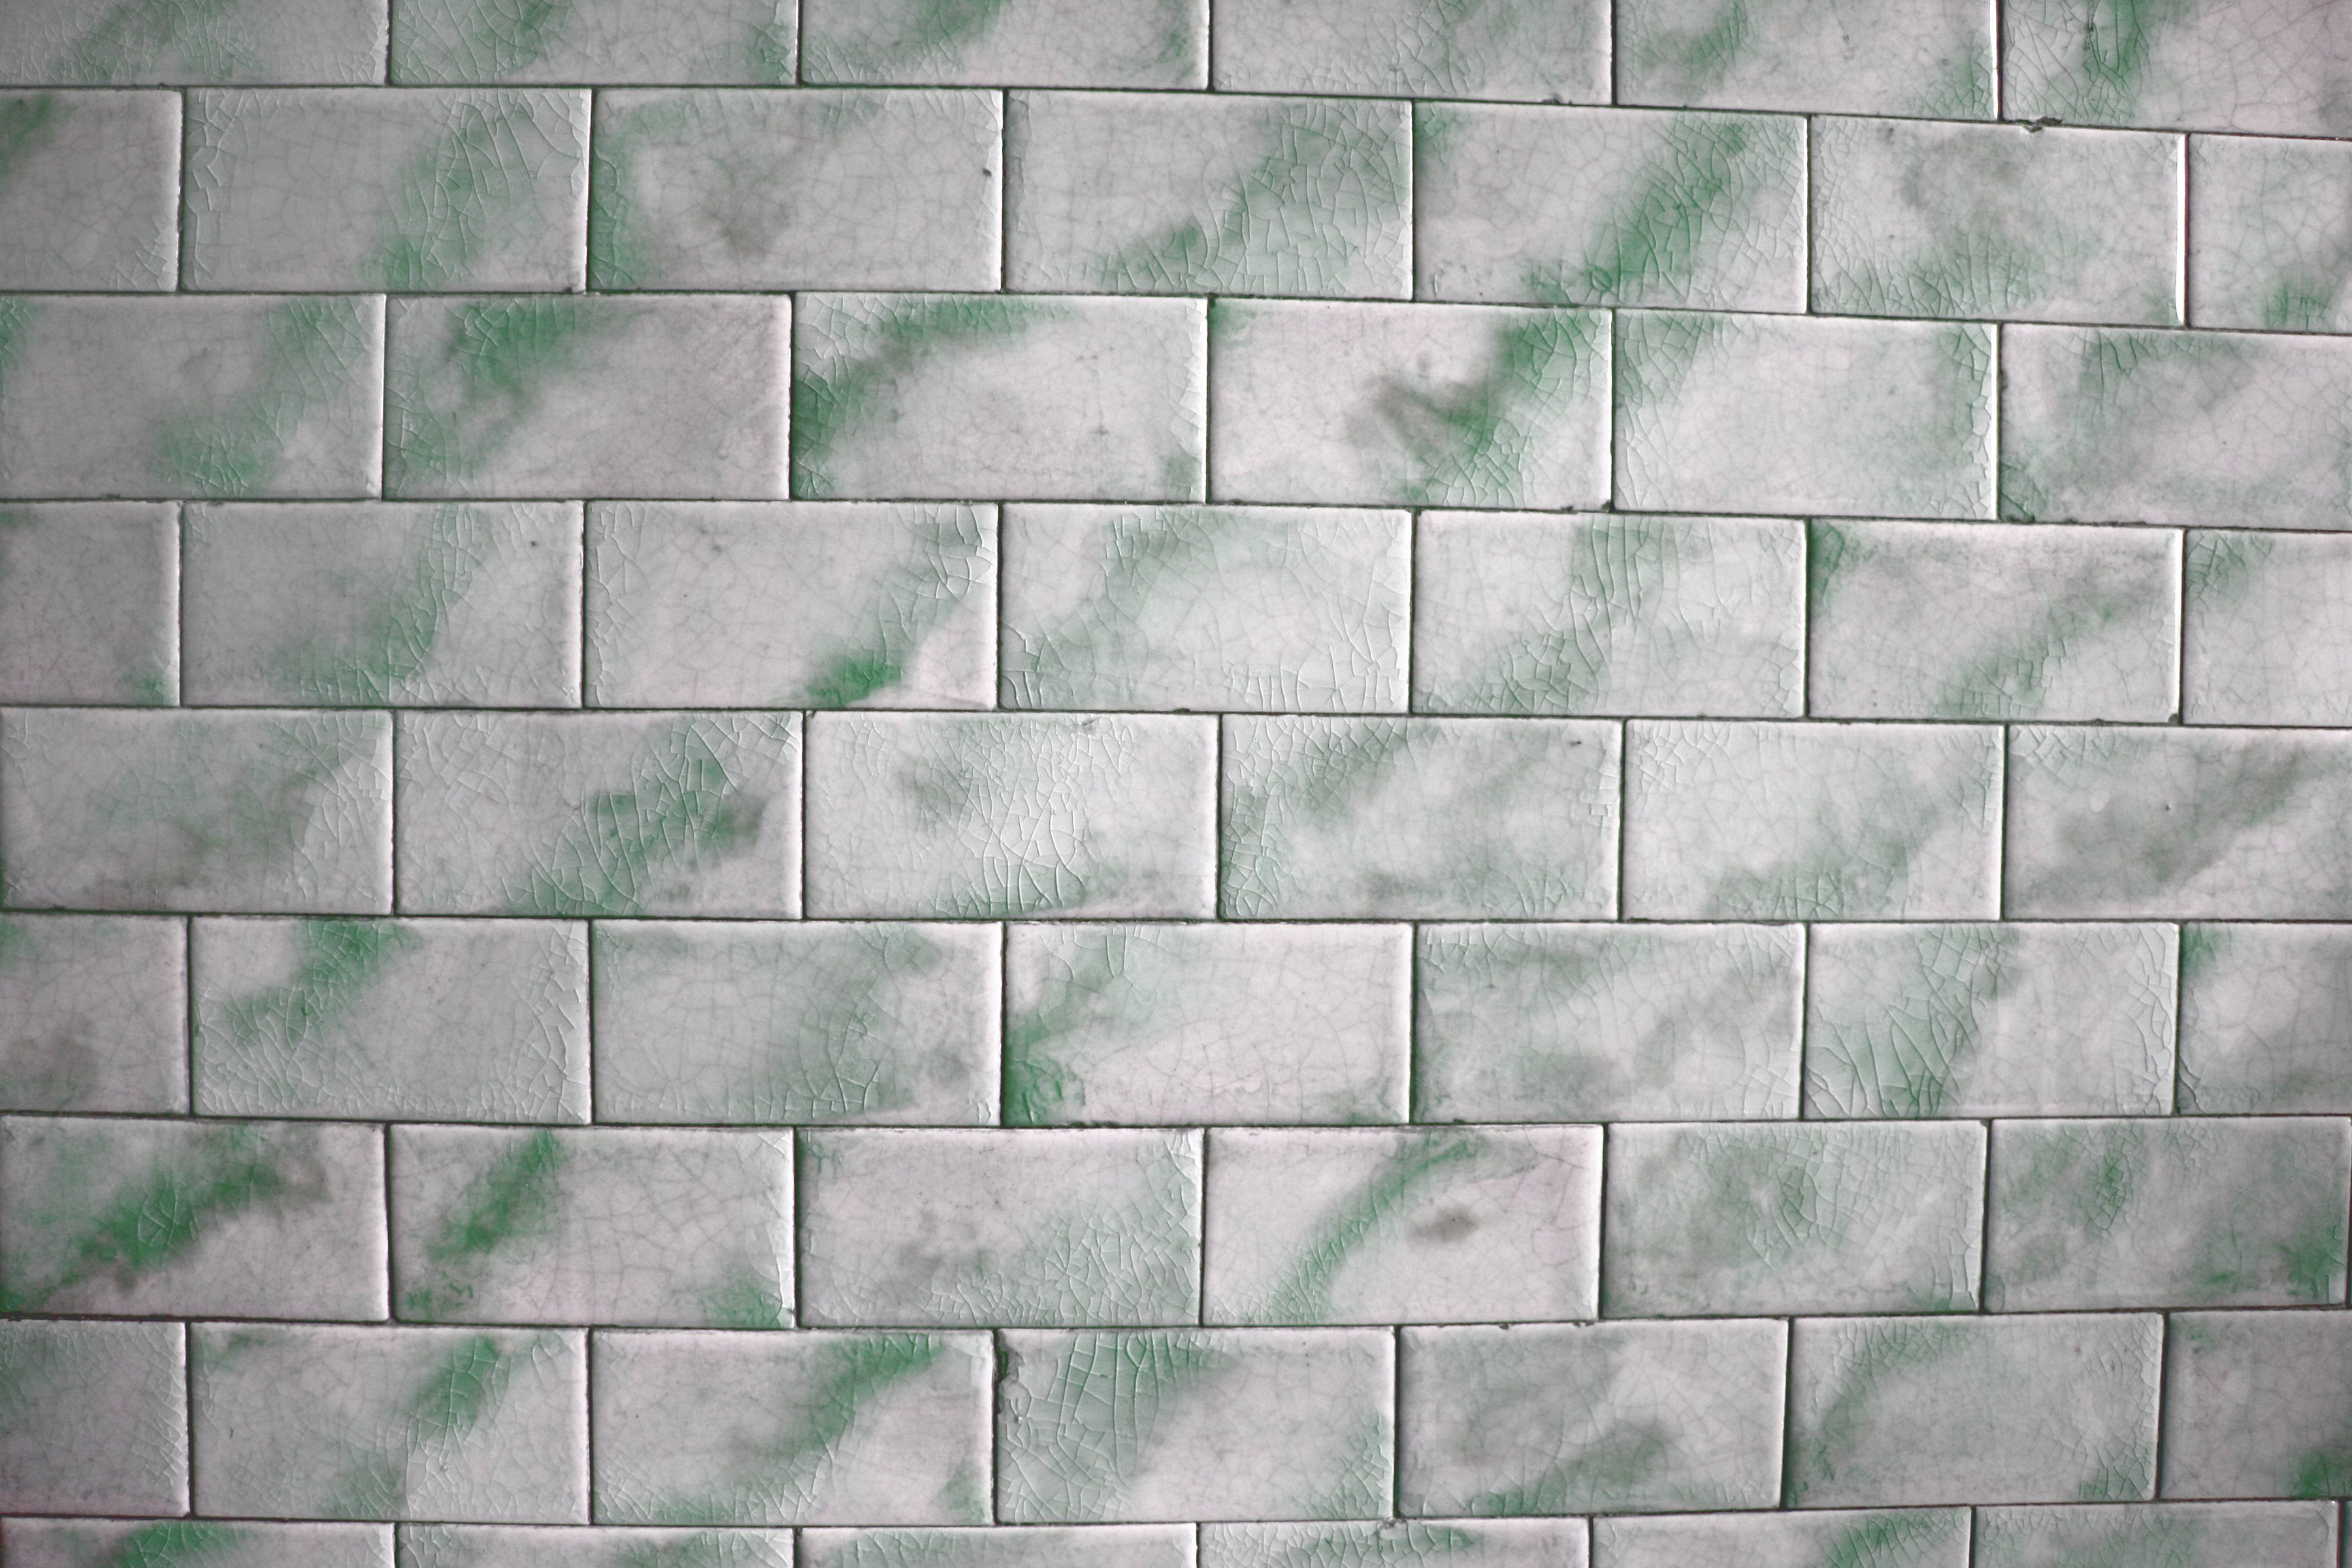 Vintage Green and White Tile Texture - Free High Resolution Photo ...